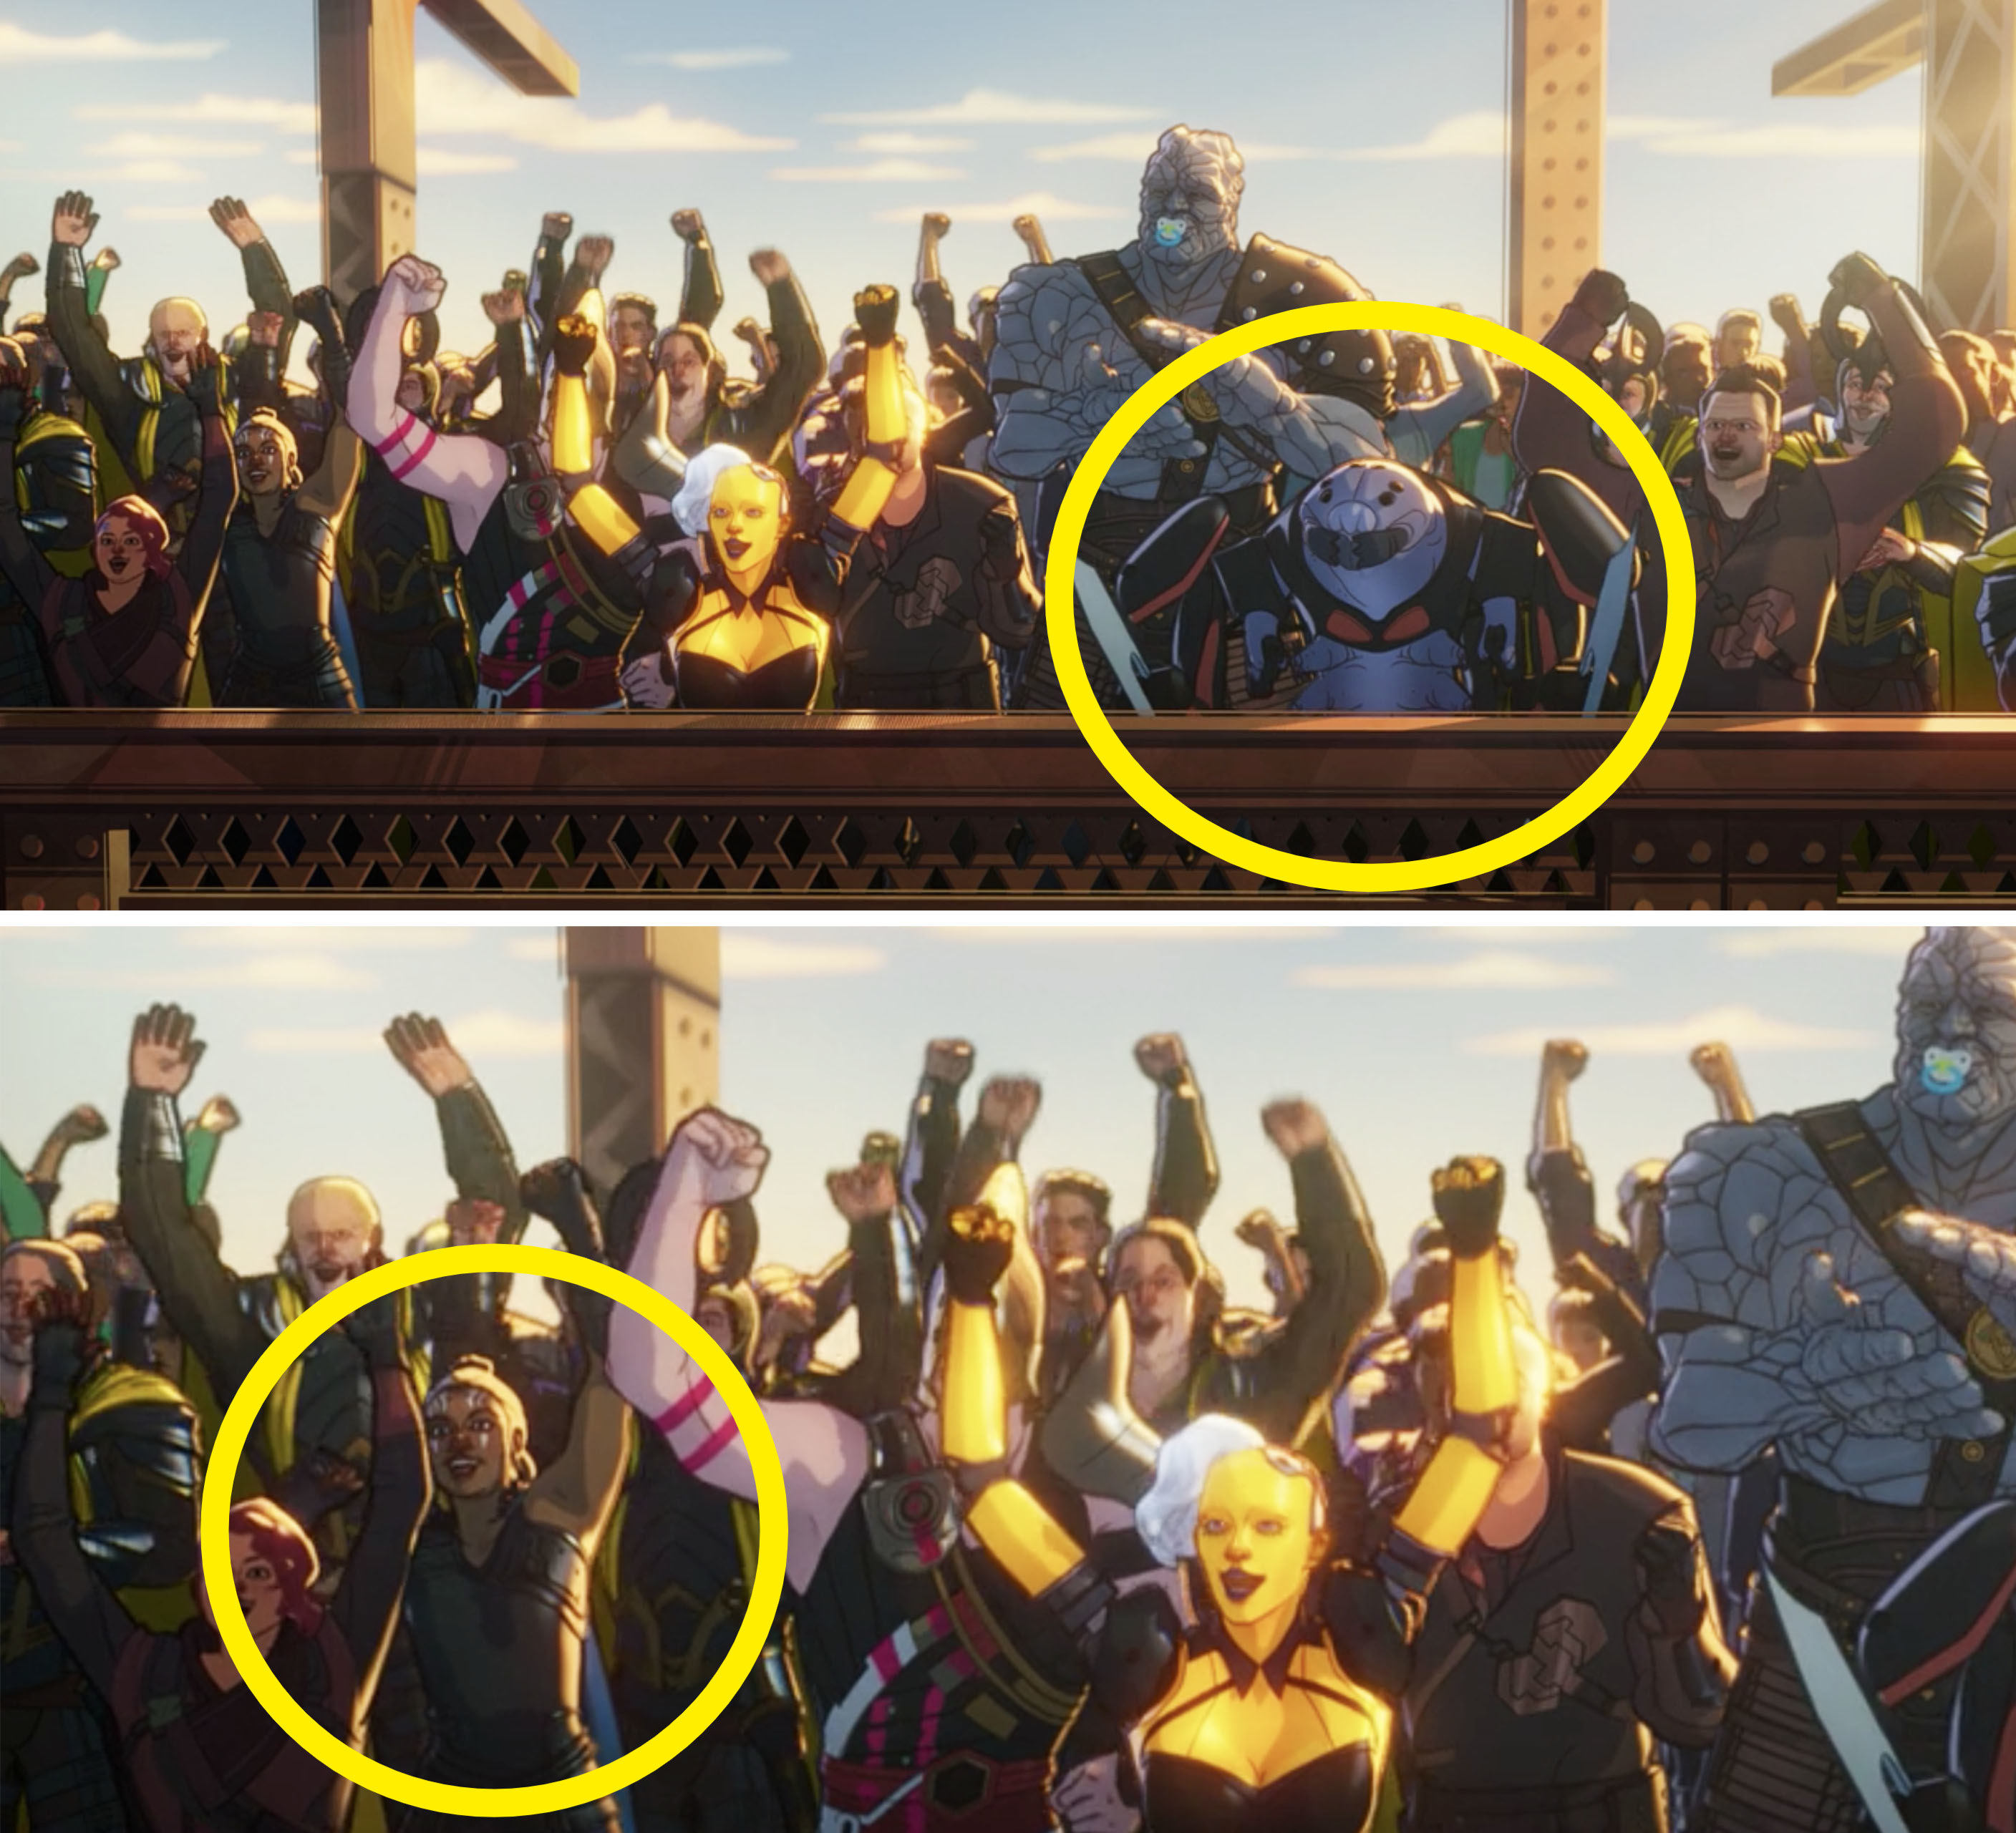 A close-up of Miek and Valkyrie in the crowd